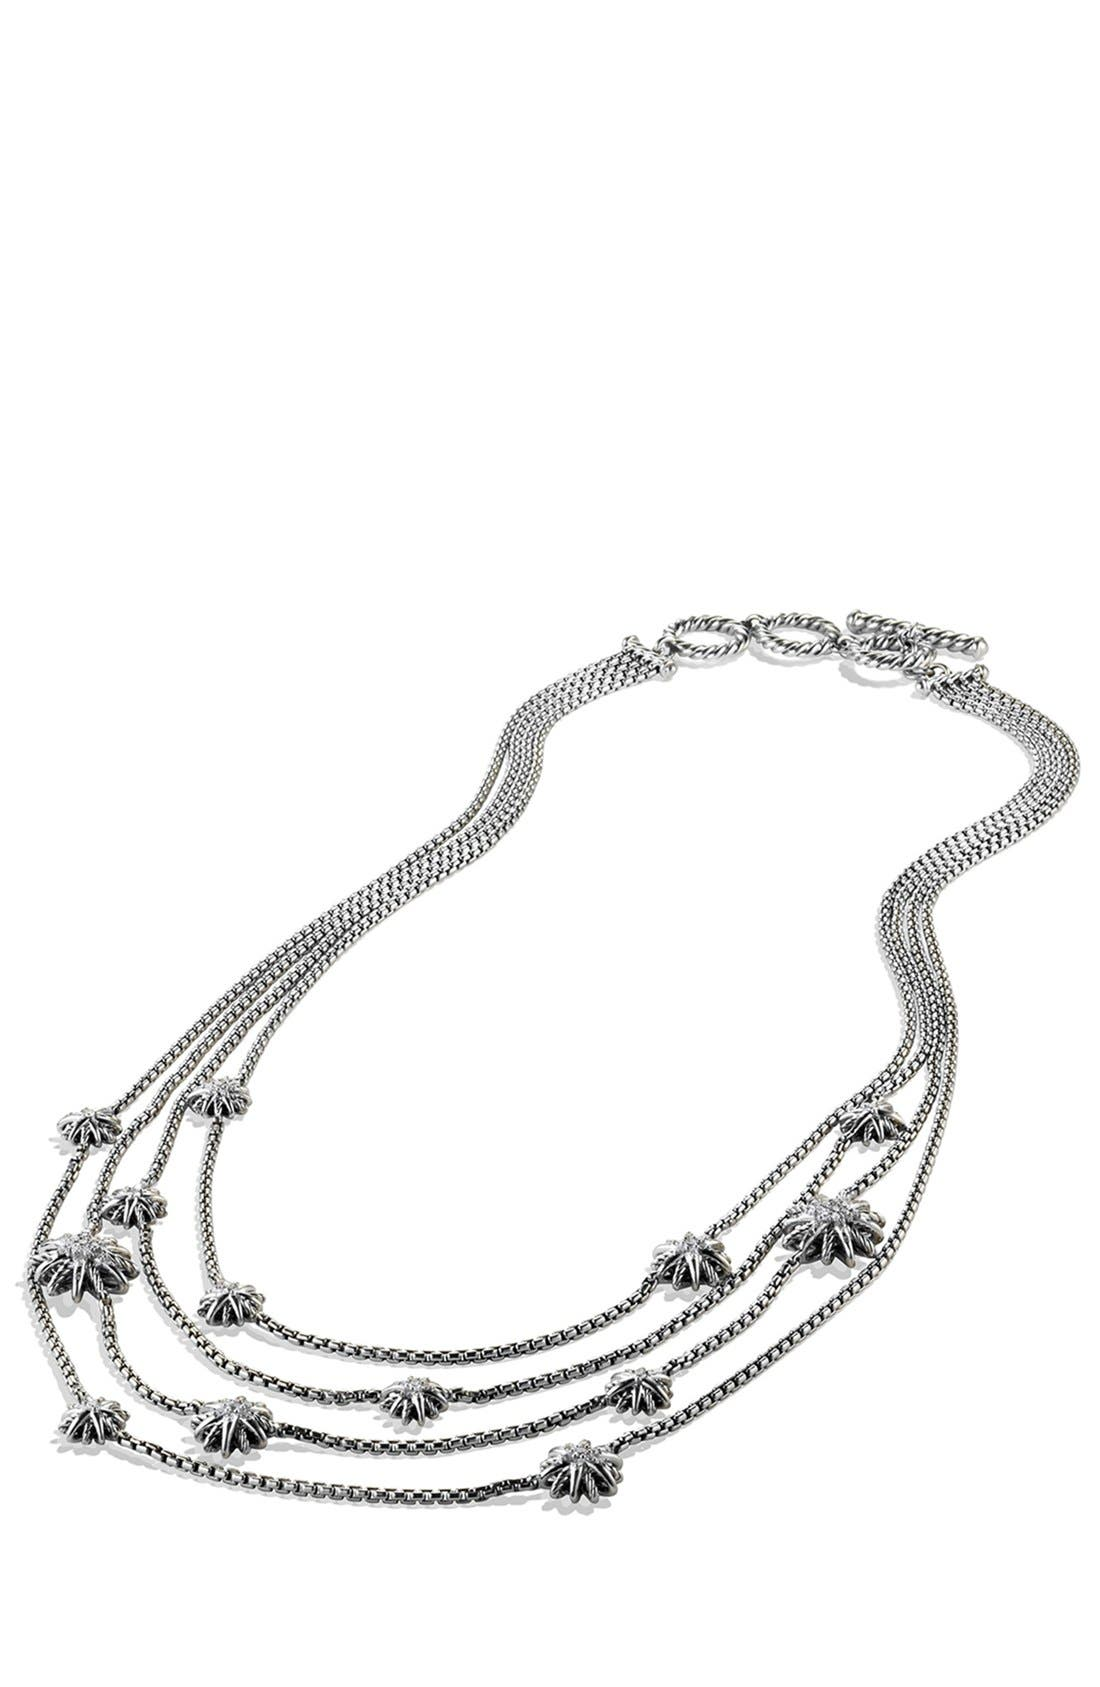 Alternate Image 2  - David Yurman 'Starburst' Chain Necklace with Diamonds